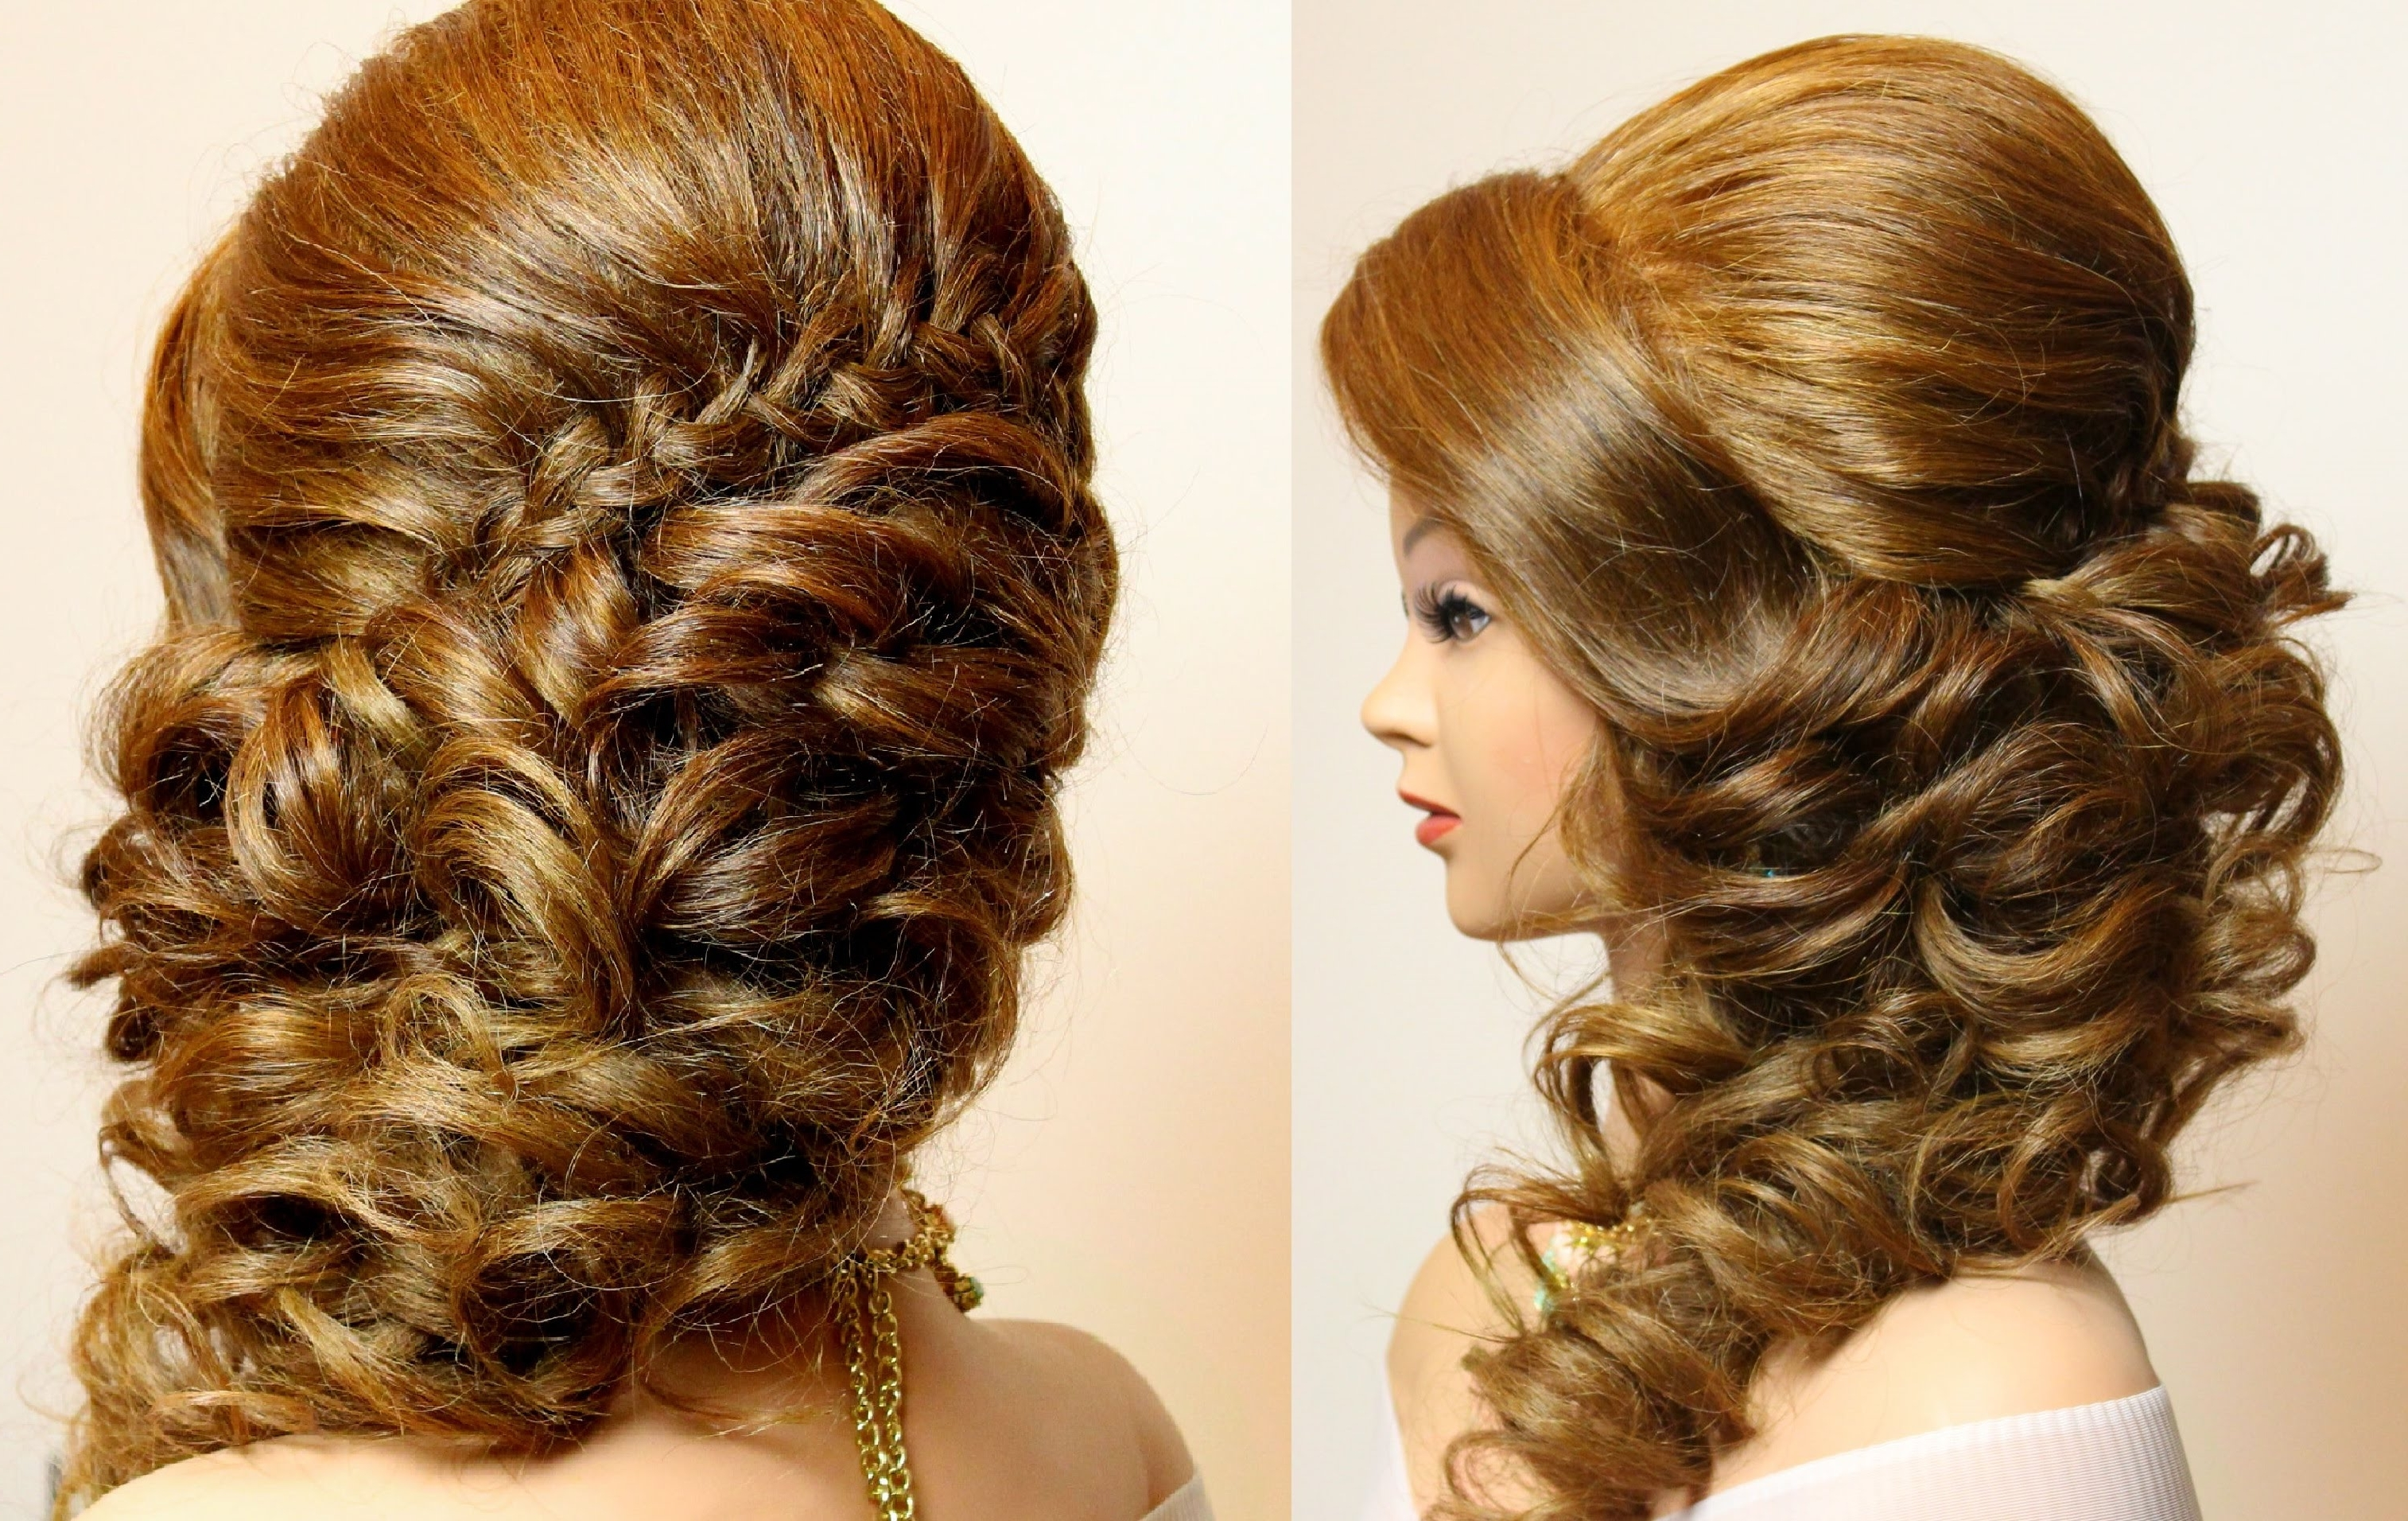 Bridal Hairstyle With Braid And Curls (View 14 of 15)